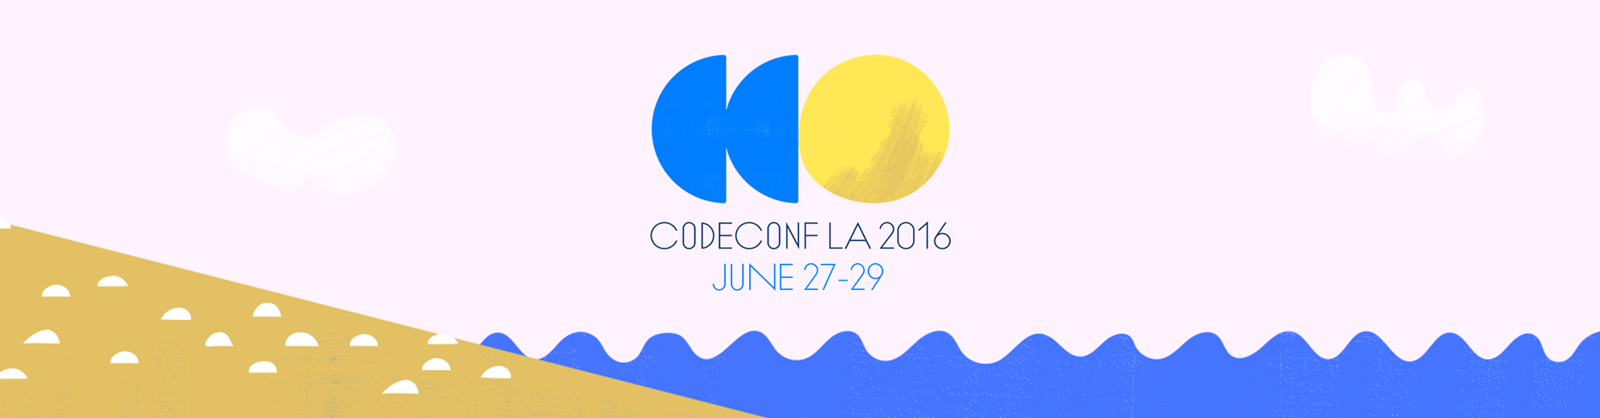 CodeConf LA is happening next month